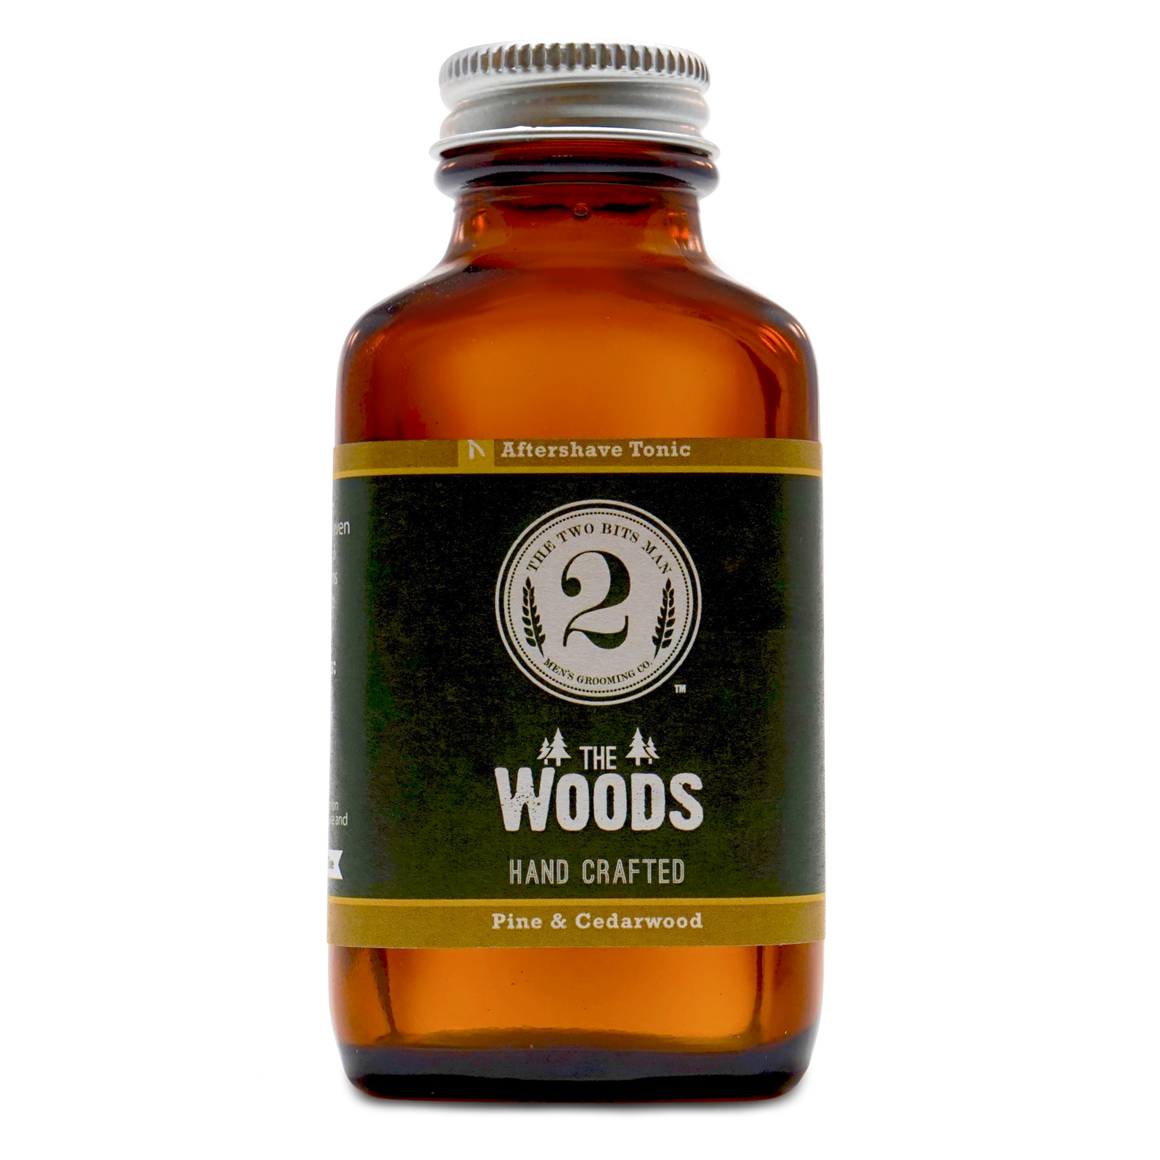 The Woods - Aftershave Tonic